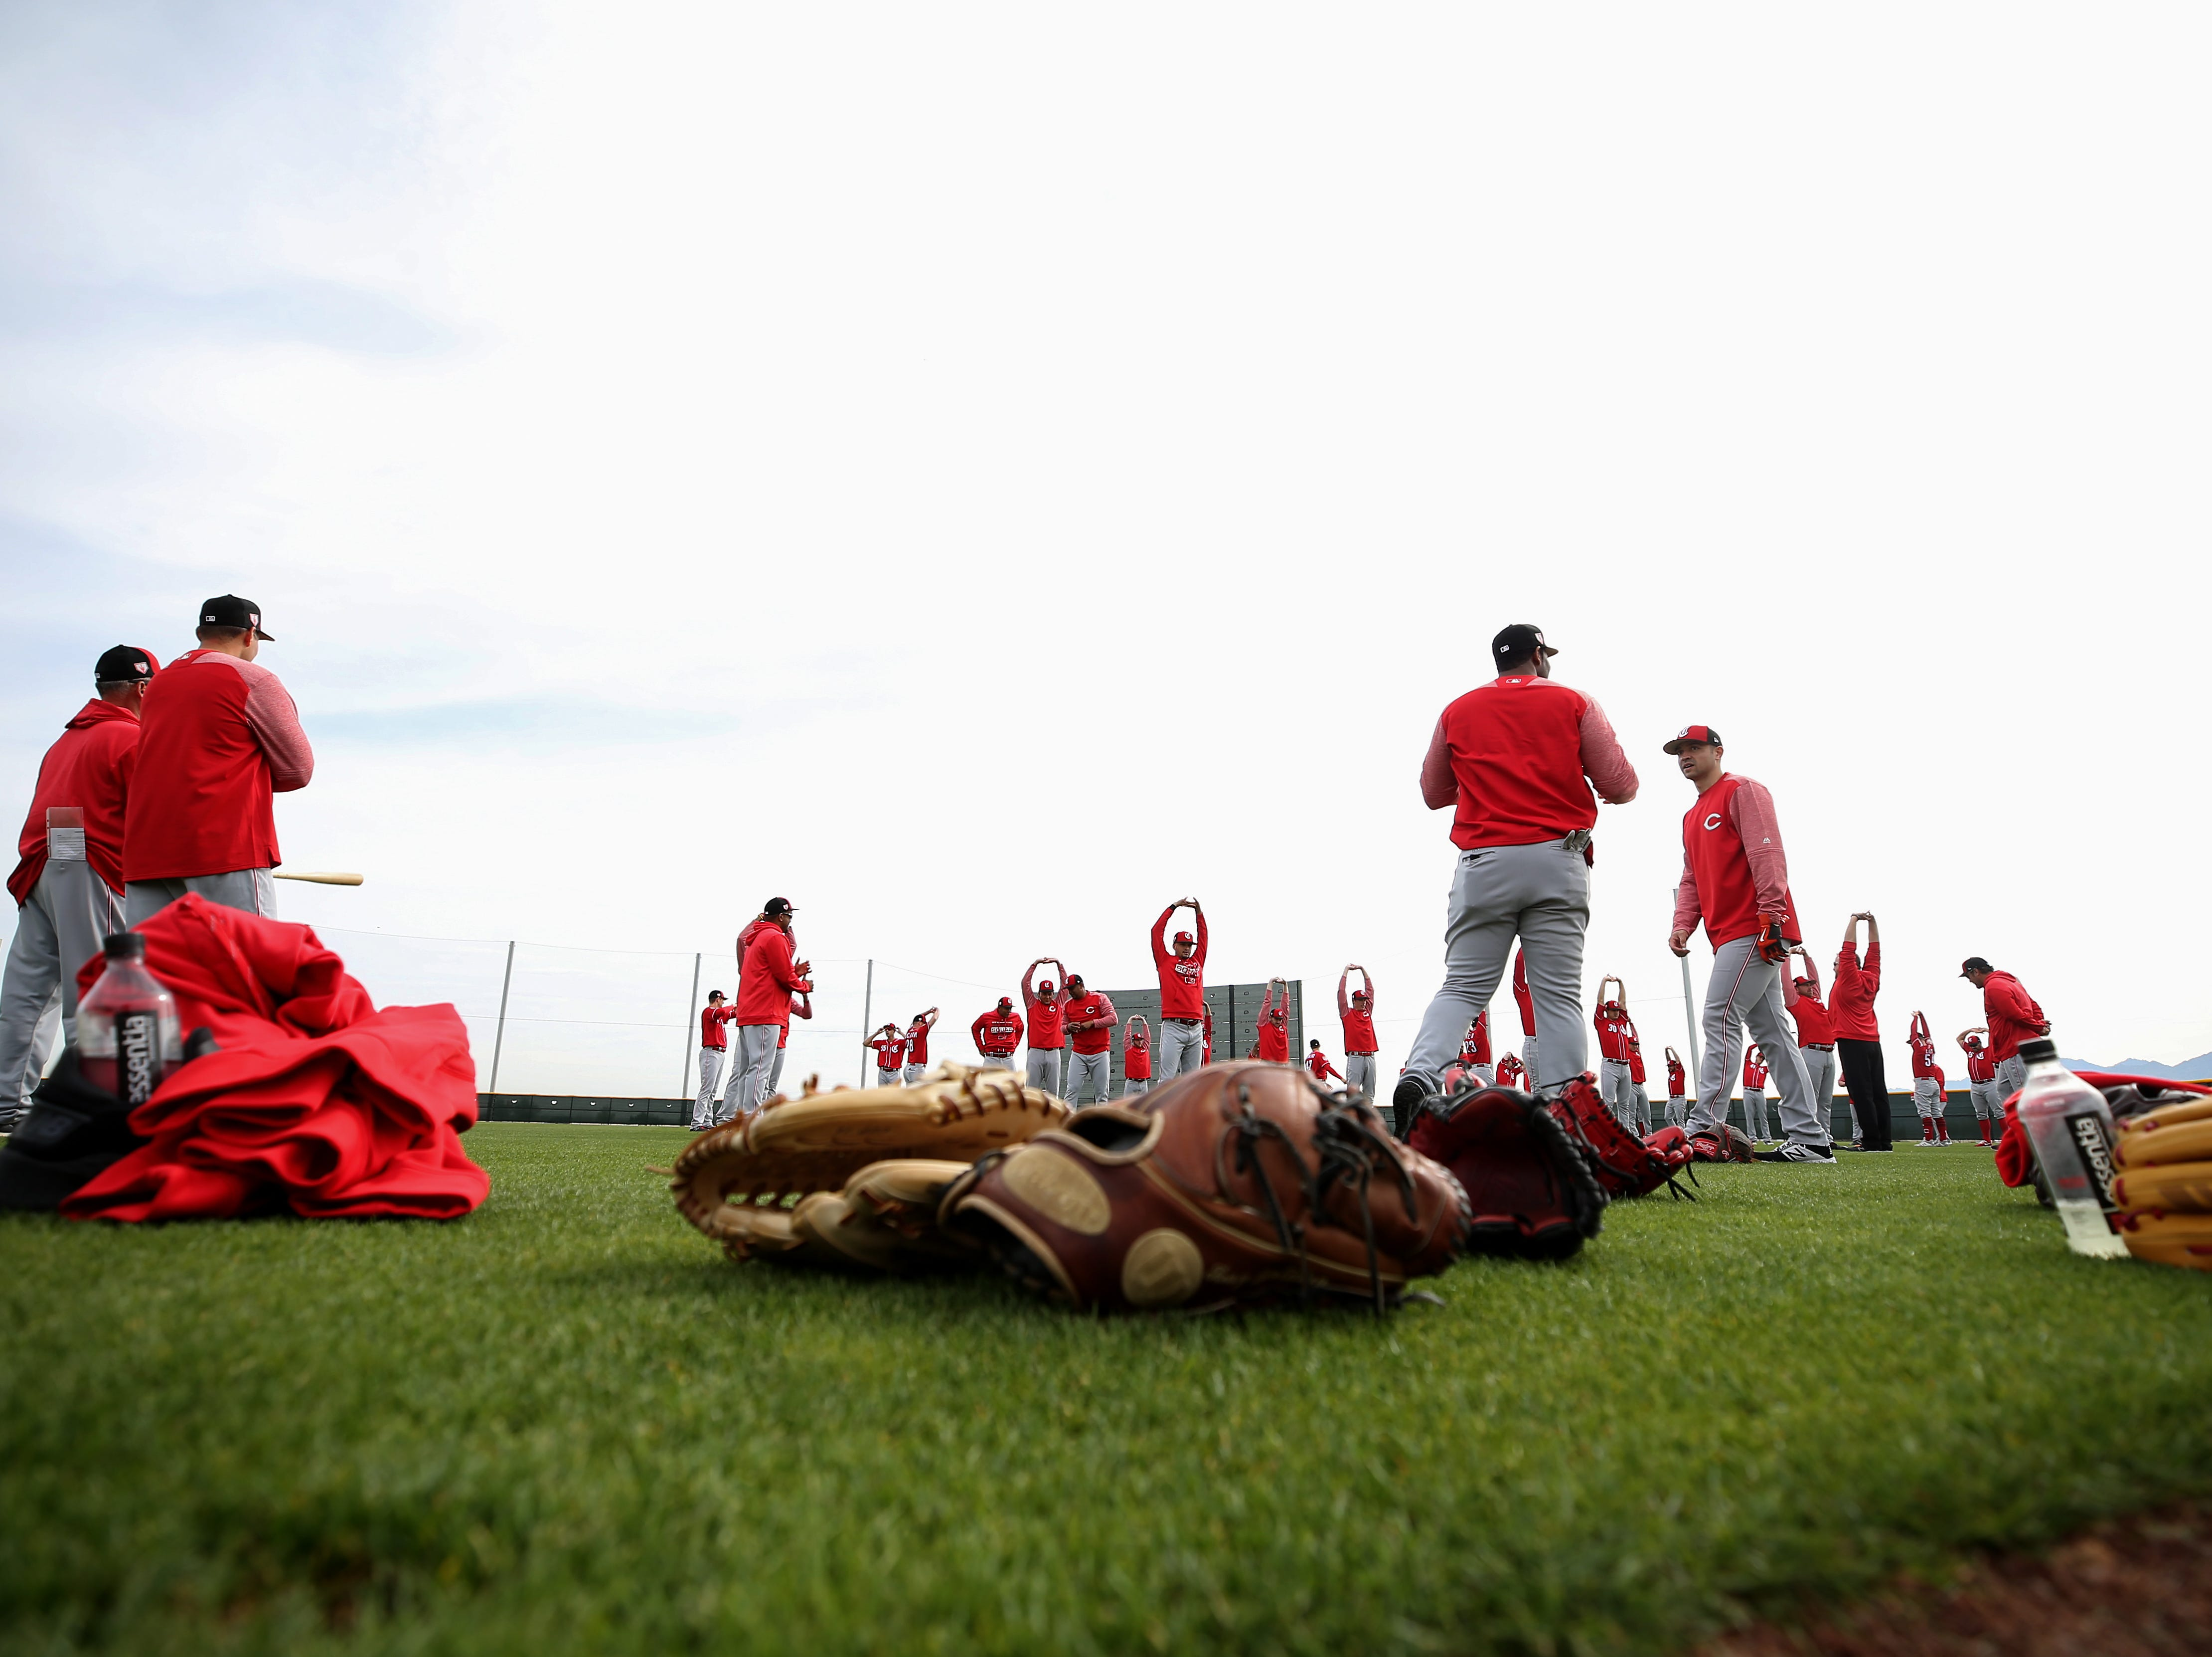 Cincinnati Reds pitchers stretch on the first day of formal workouts, Wednesday, Feb. 13, 2019, at the Cincinnati Reds spring training facility in Goodyear, Arizona.